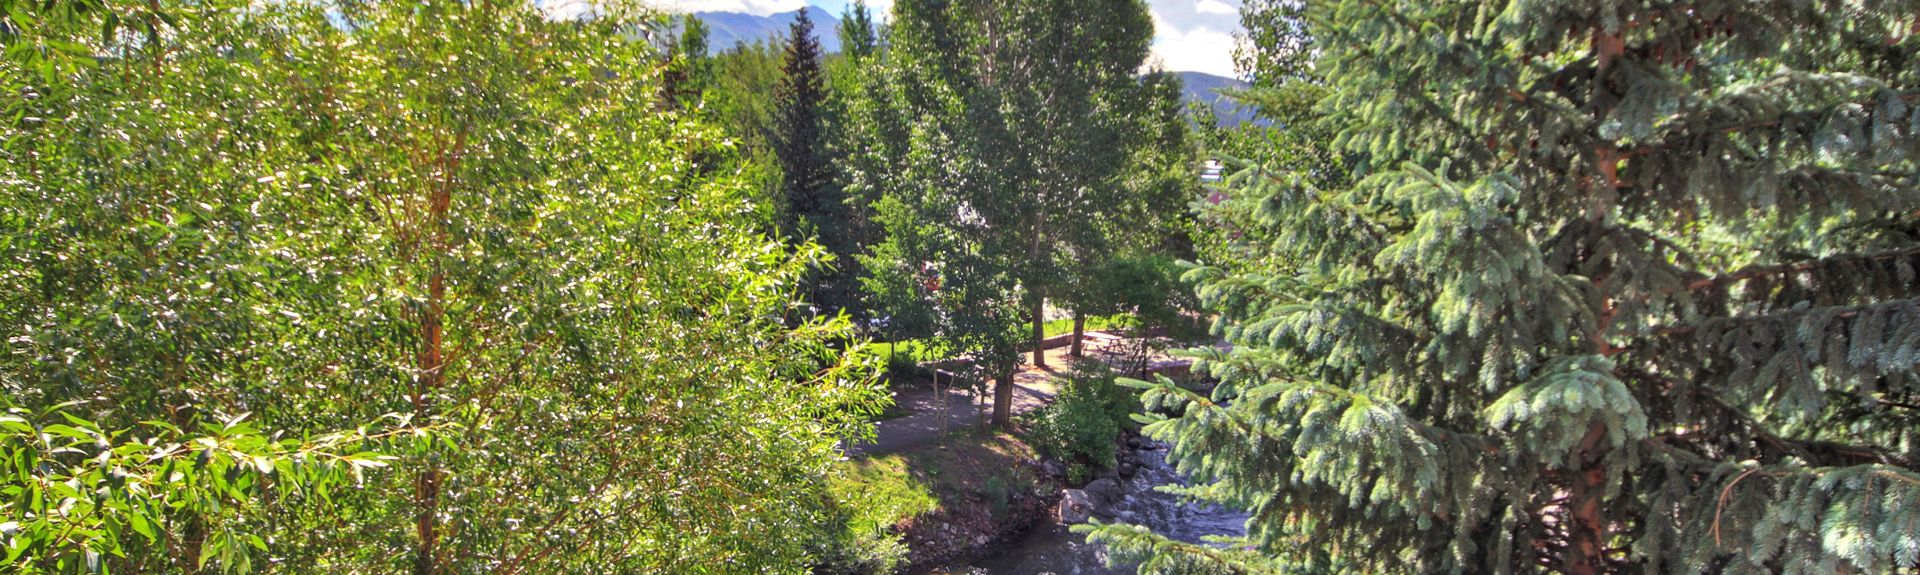 River Mountain Lodge, Breckenridge, CO, USA